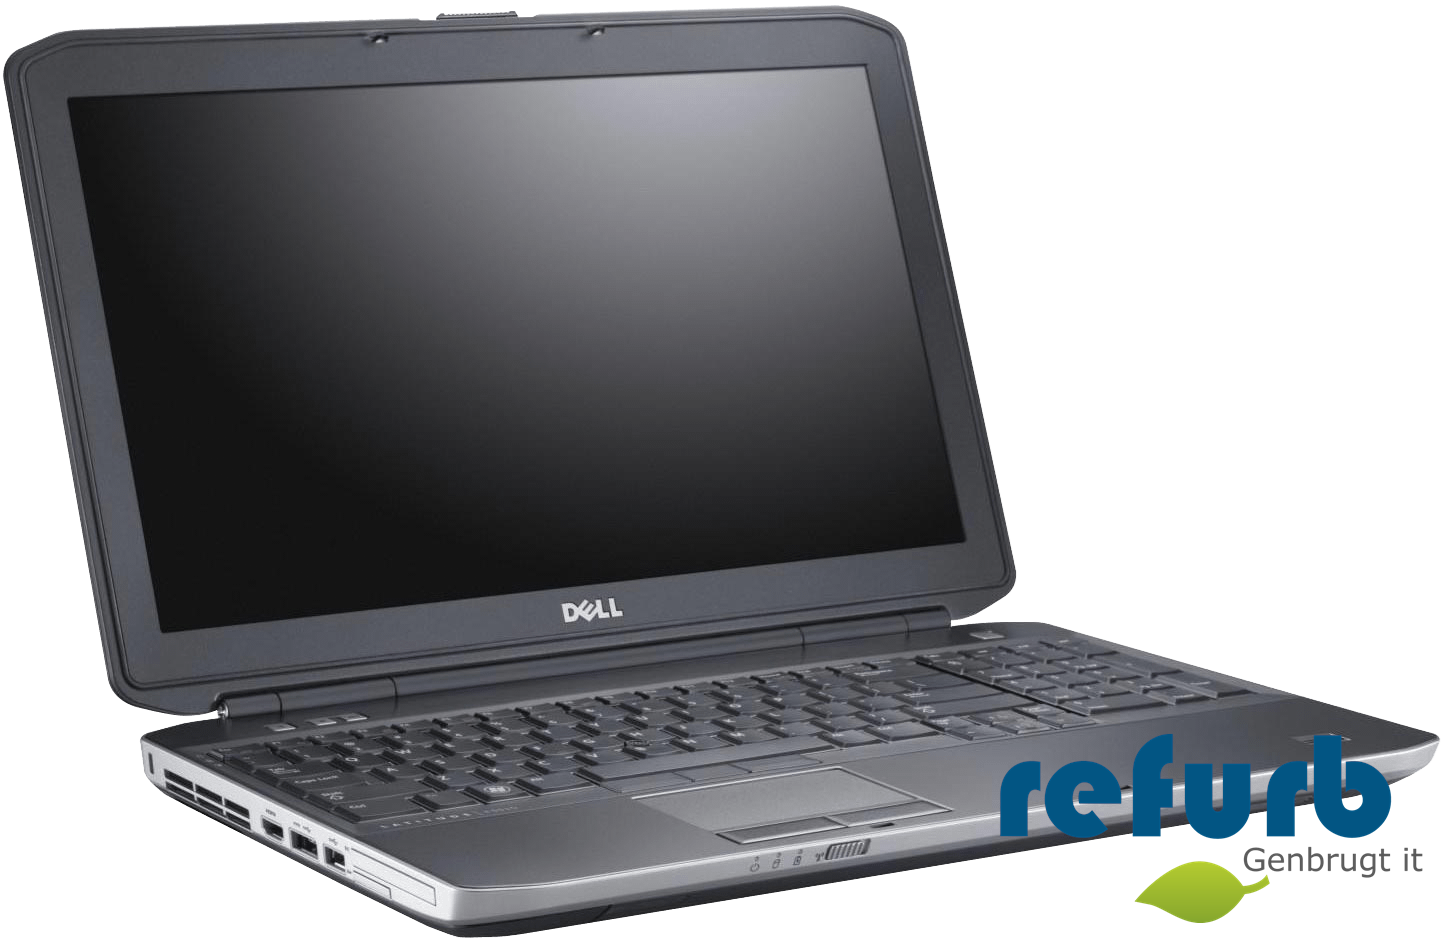 Dell latitude e5530 fra Dell på refurb